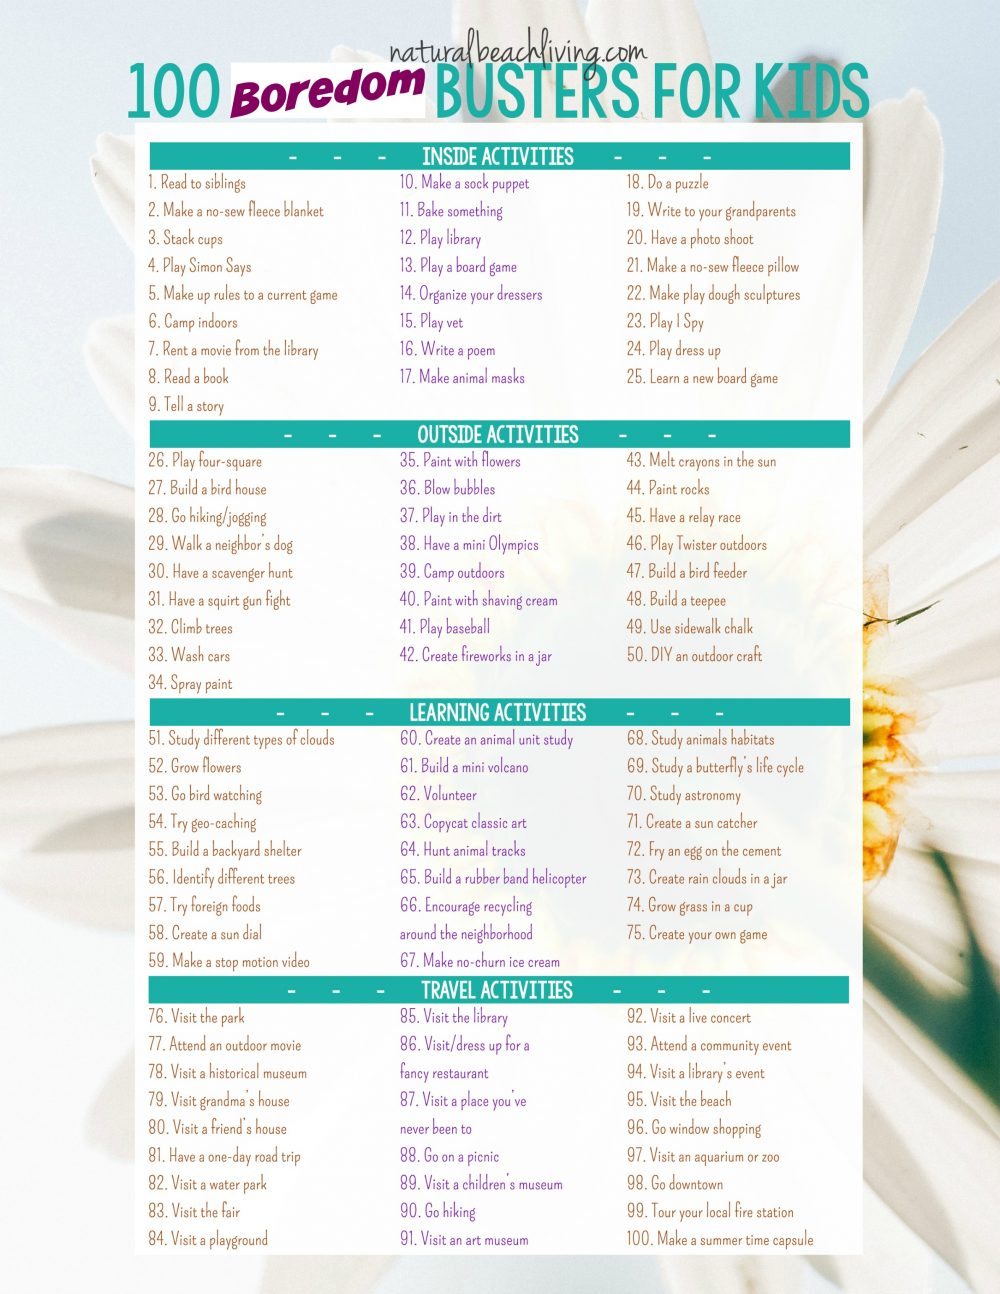 100 Boredom Busters Summer Activities (Free Printable)